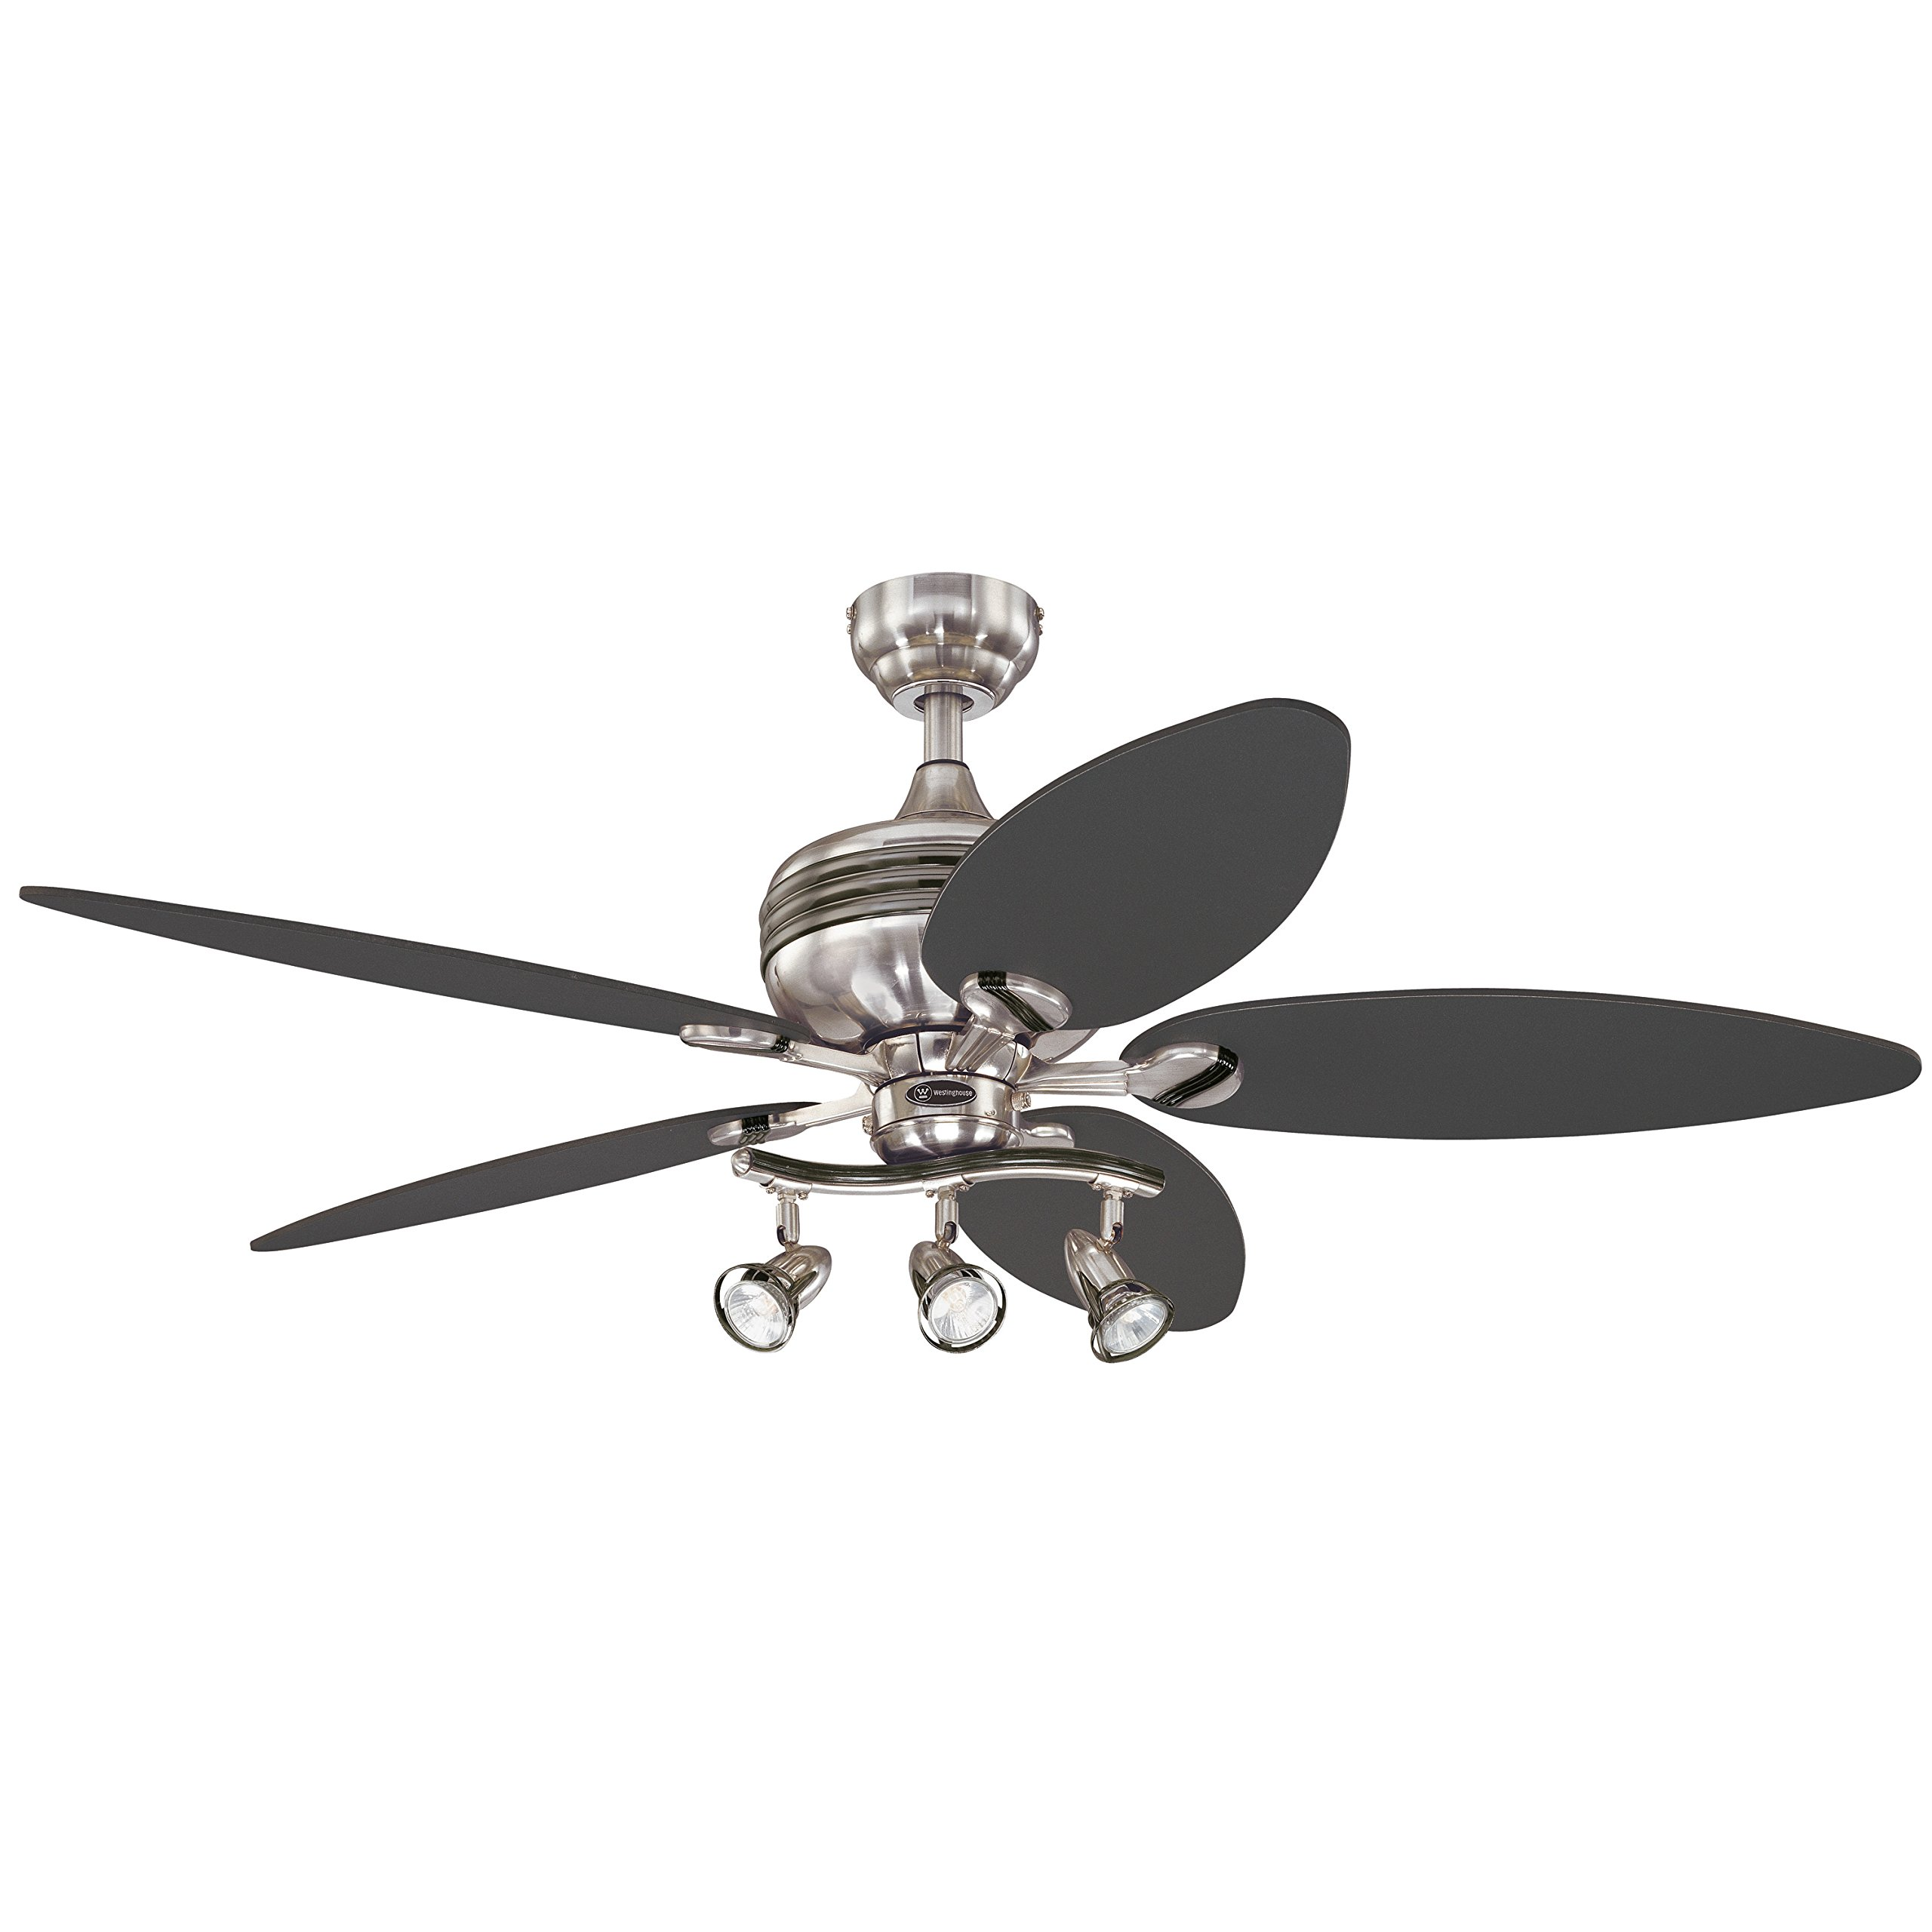 Westinghouse 7234220 Xavier II 52-Inch Five-Blade Indoor Ceiling Fan with Three Spot Lights, Brushed Nickel with Gun Metal Accents